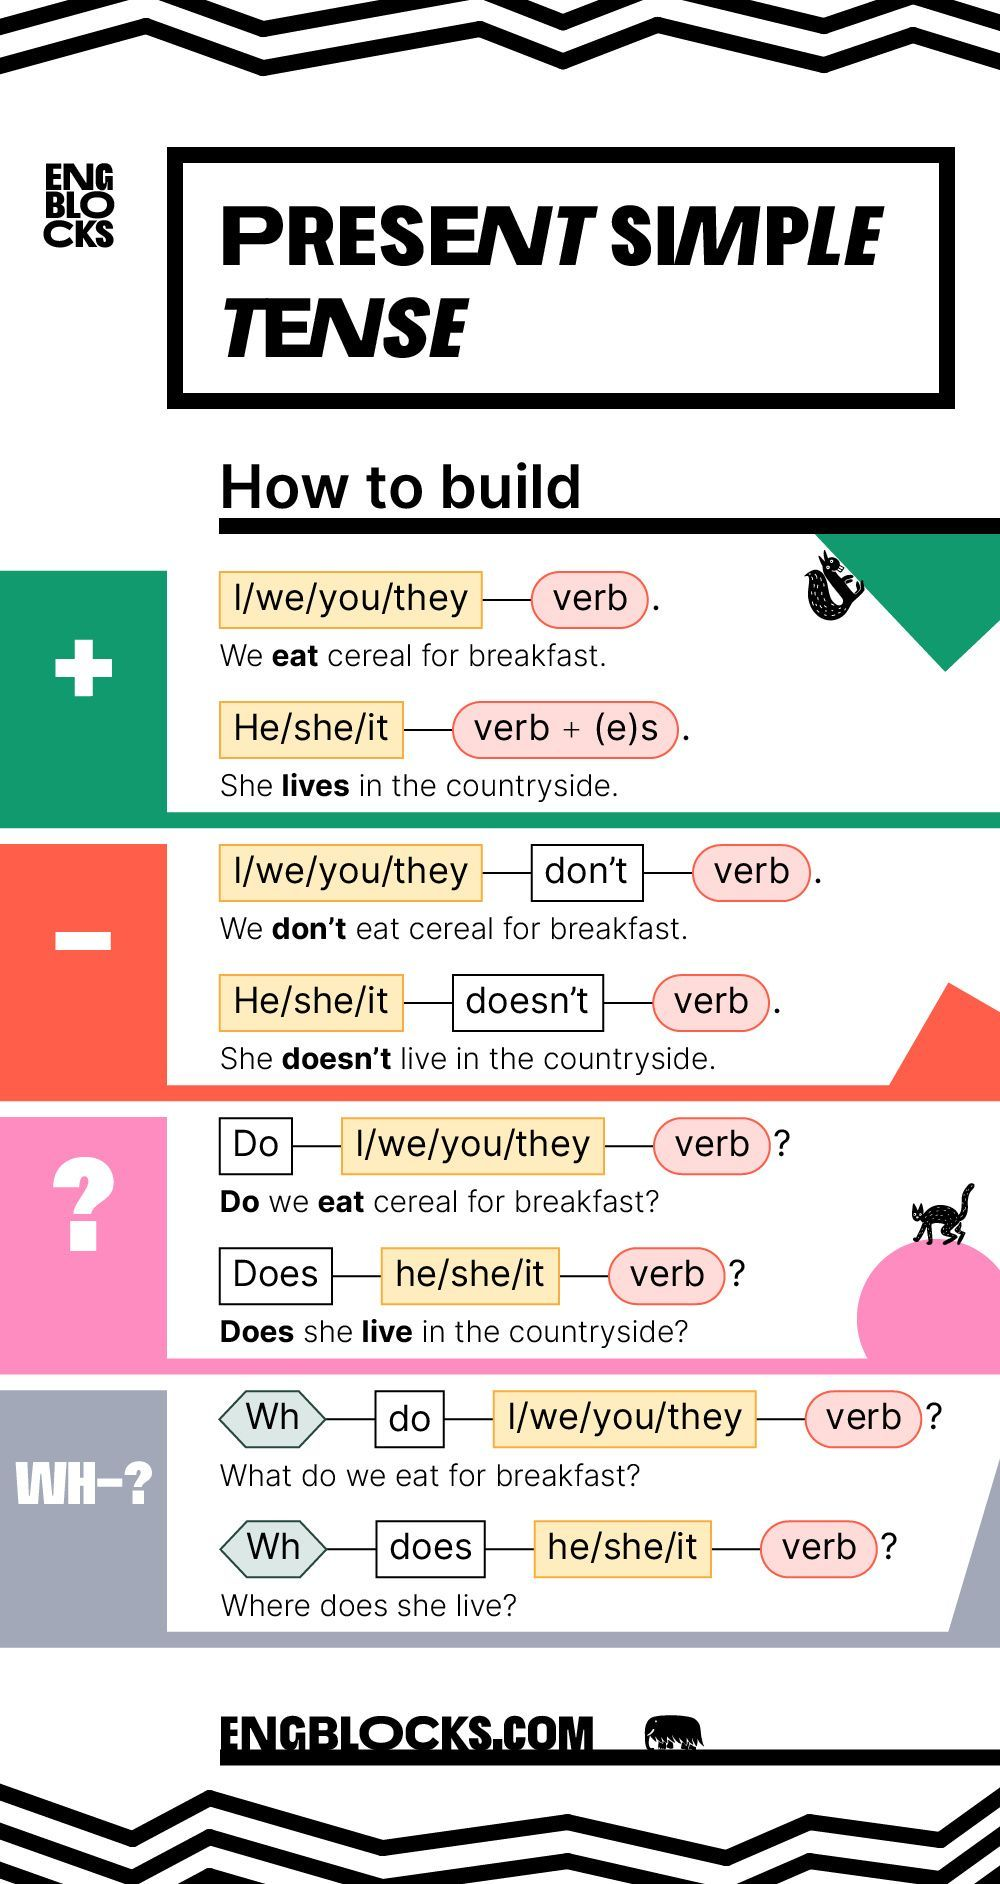 present simple tense — structure — how to build  english